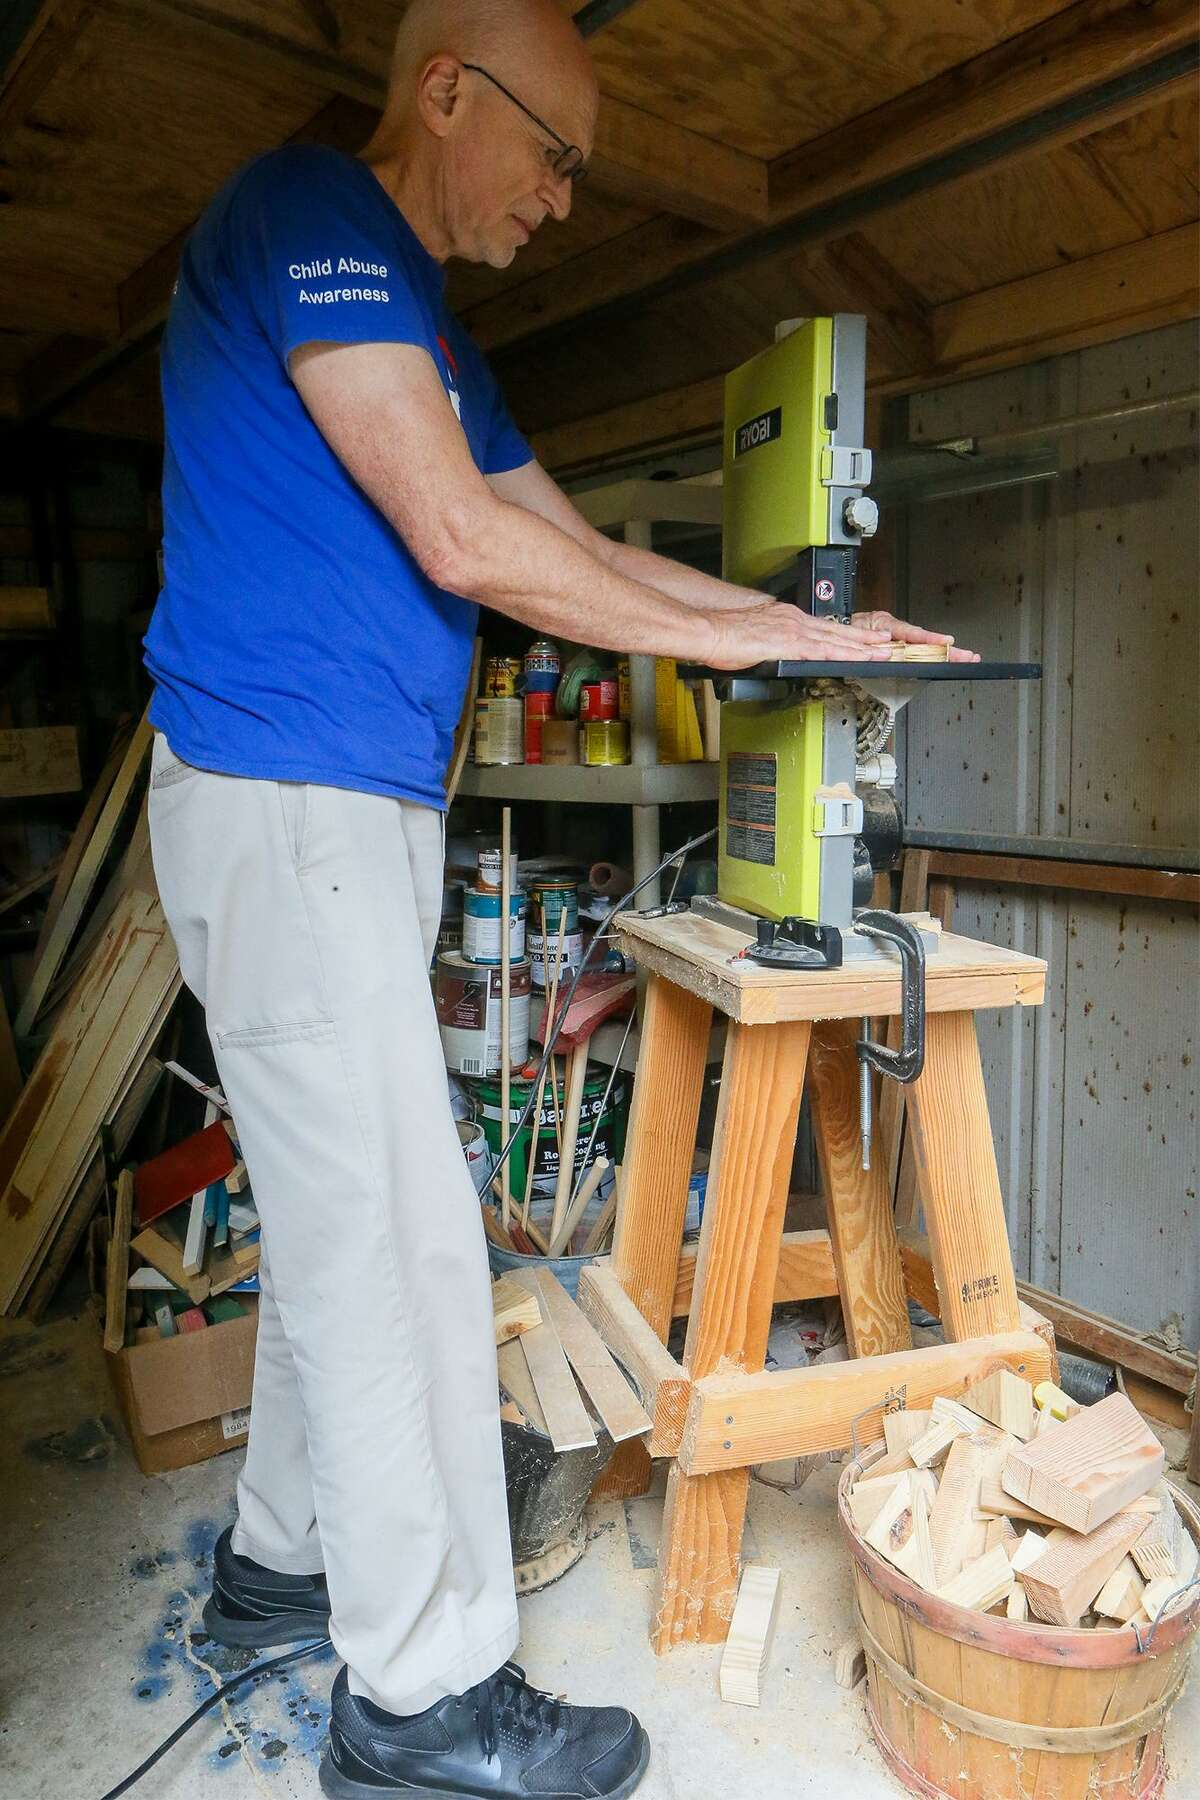 John Faultersack prepares to work with a band saw in his backyard workshop Nov. 5, 2018. Faultersack creates wooden toys and donates them to children in foster care.